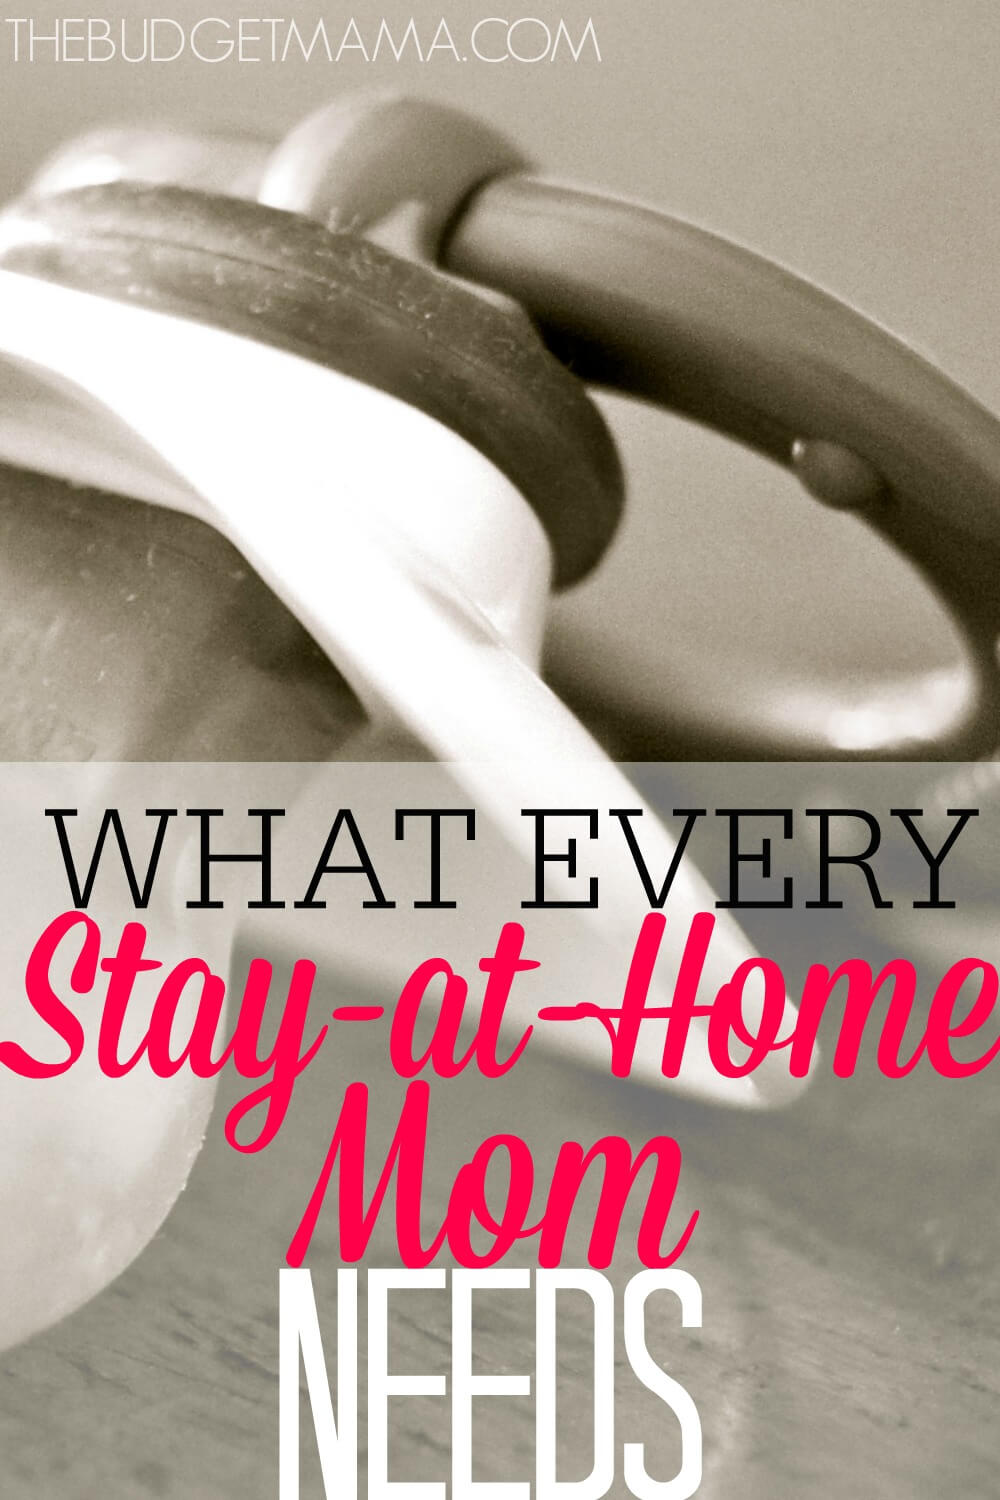 This isn't your usual Mommy advice, this is hard-core stuff. If you're a Stay-at-Home Mom you NEED this now.